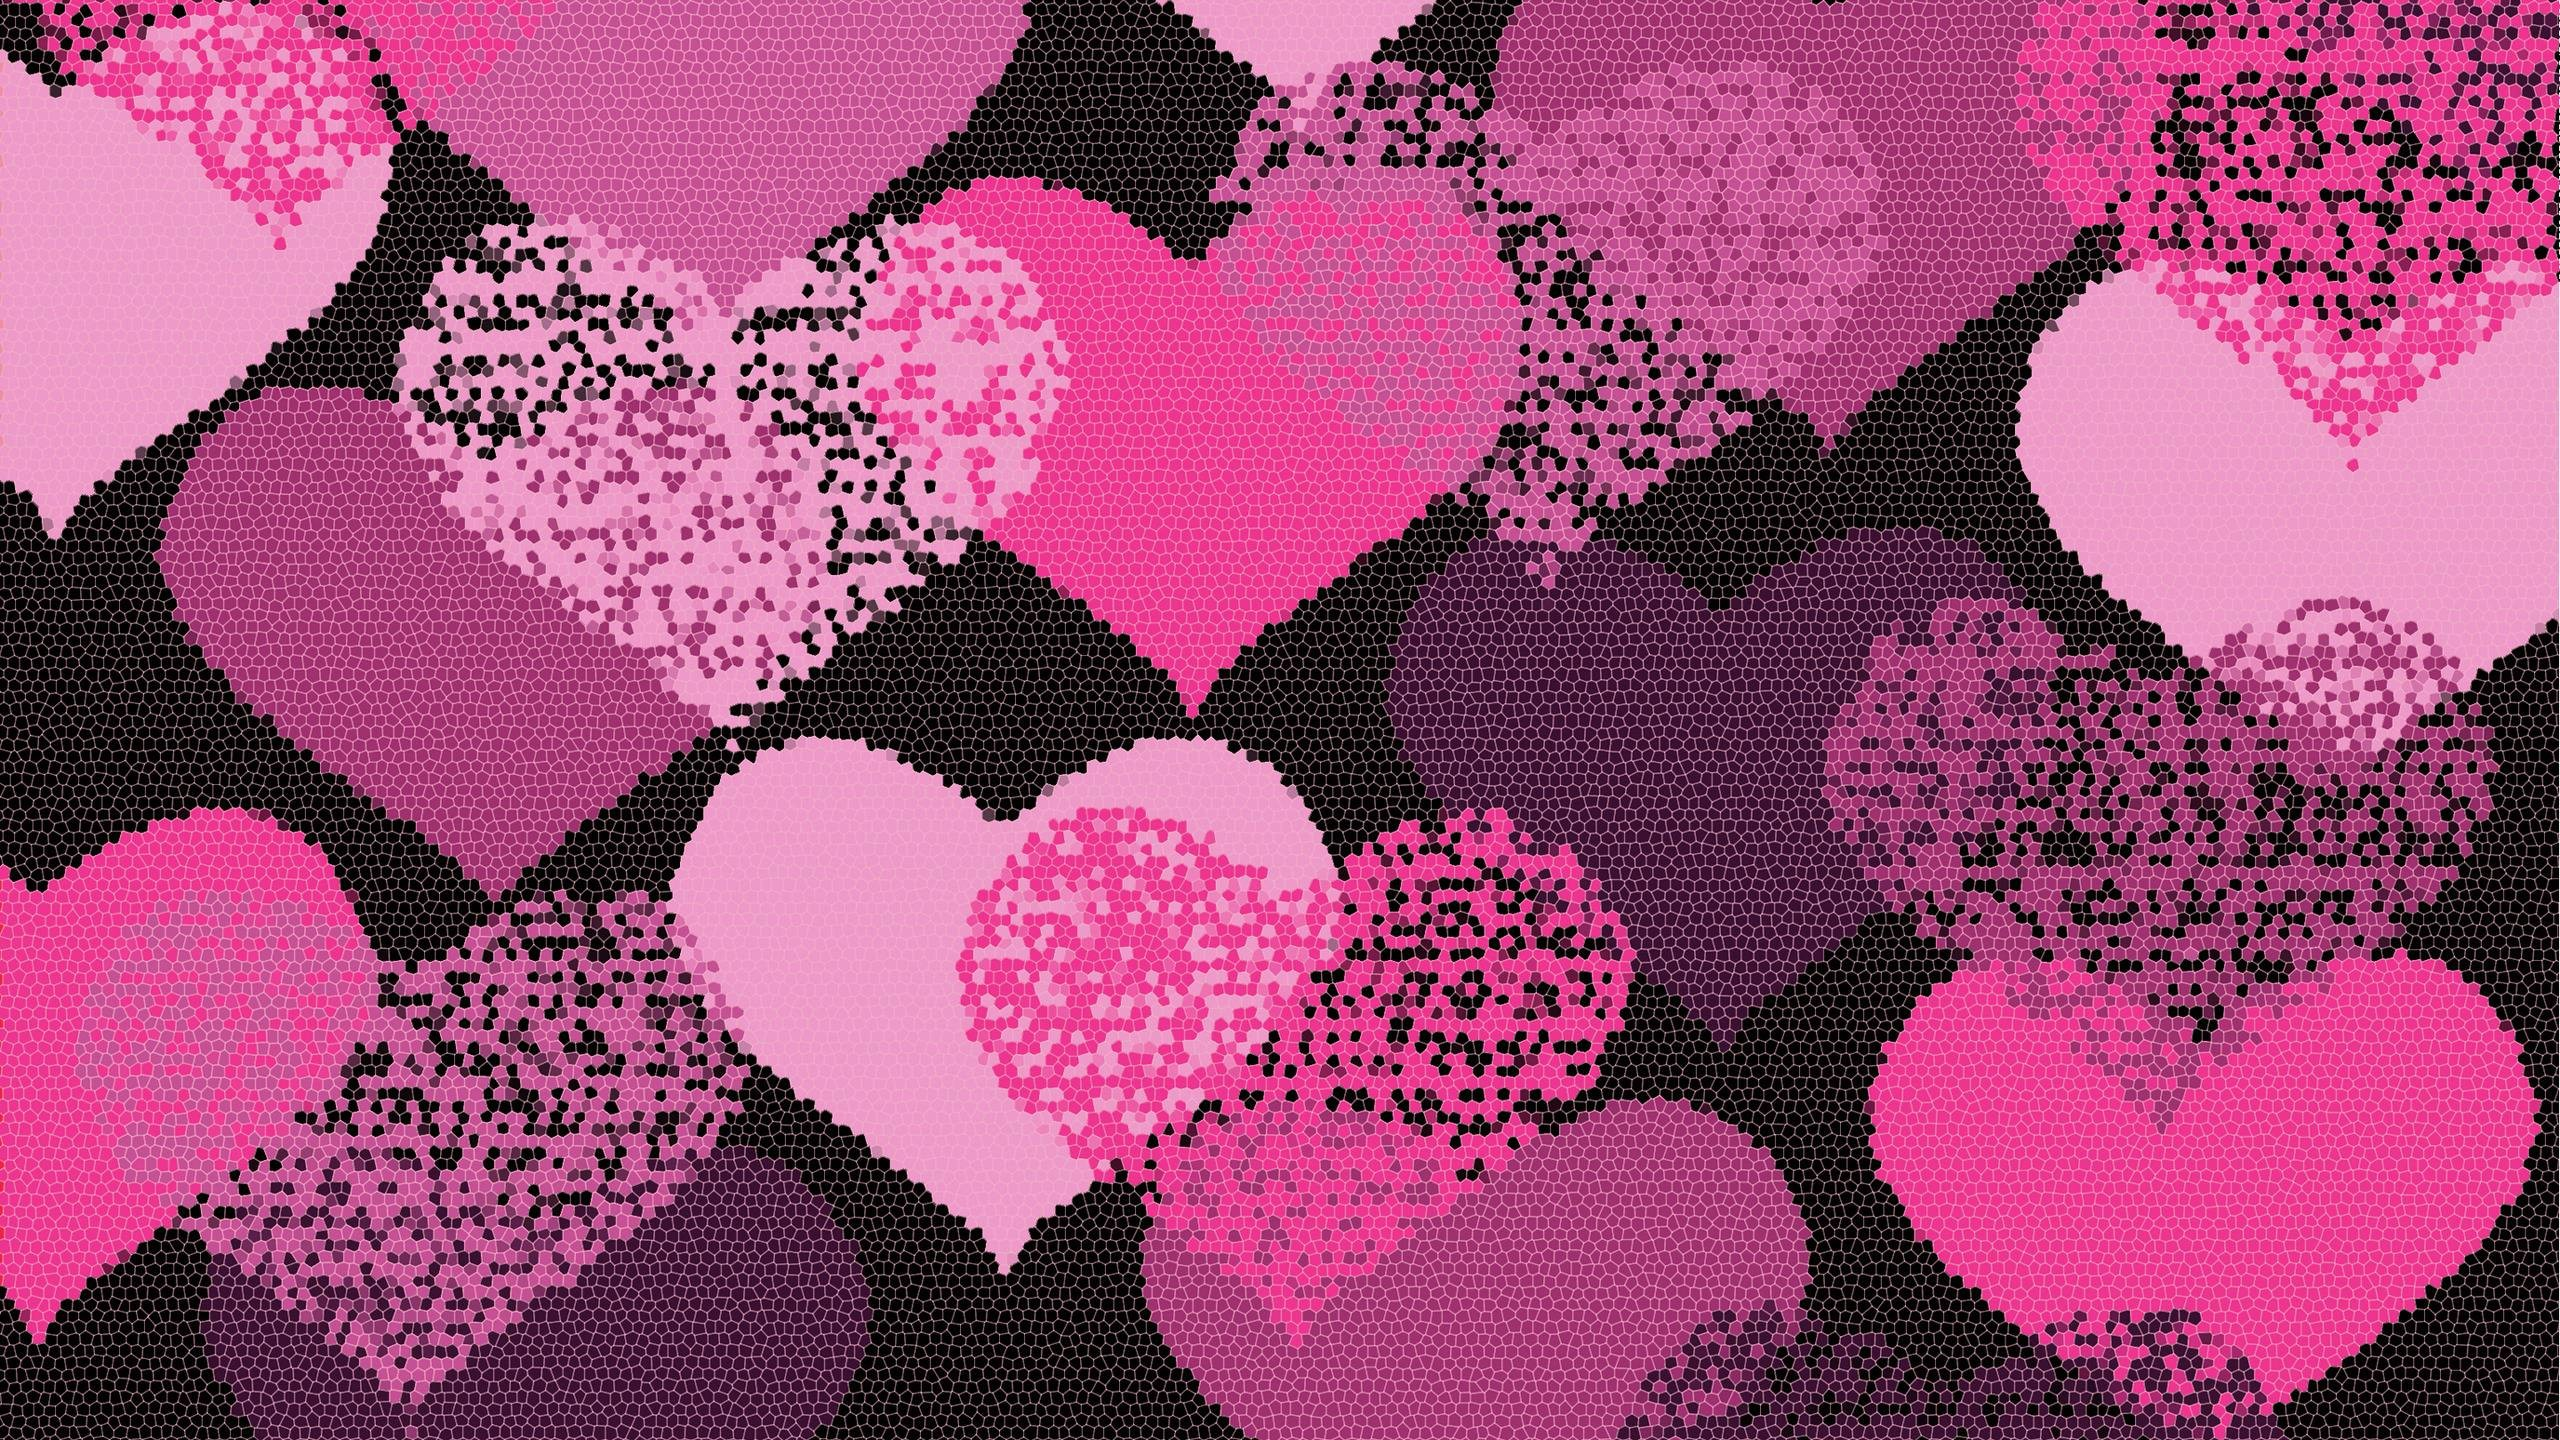 Pink Love Heart Backgrounds Wallpapertag